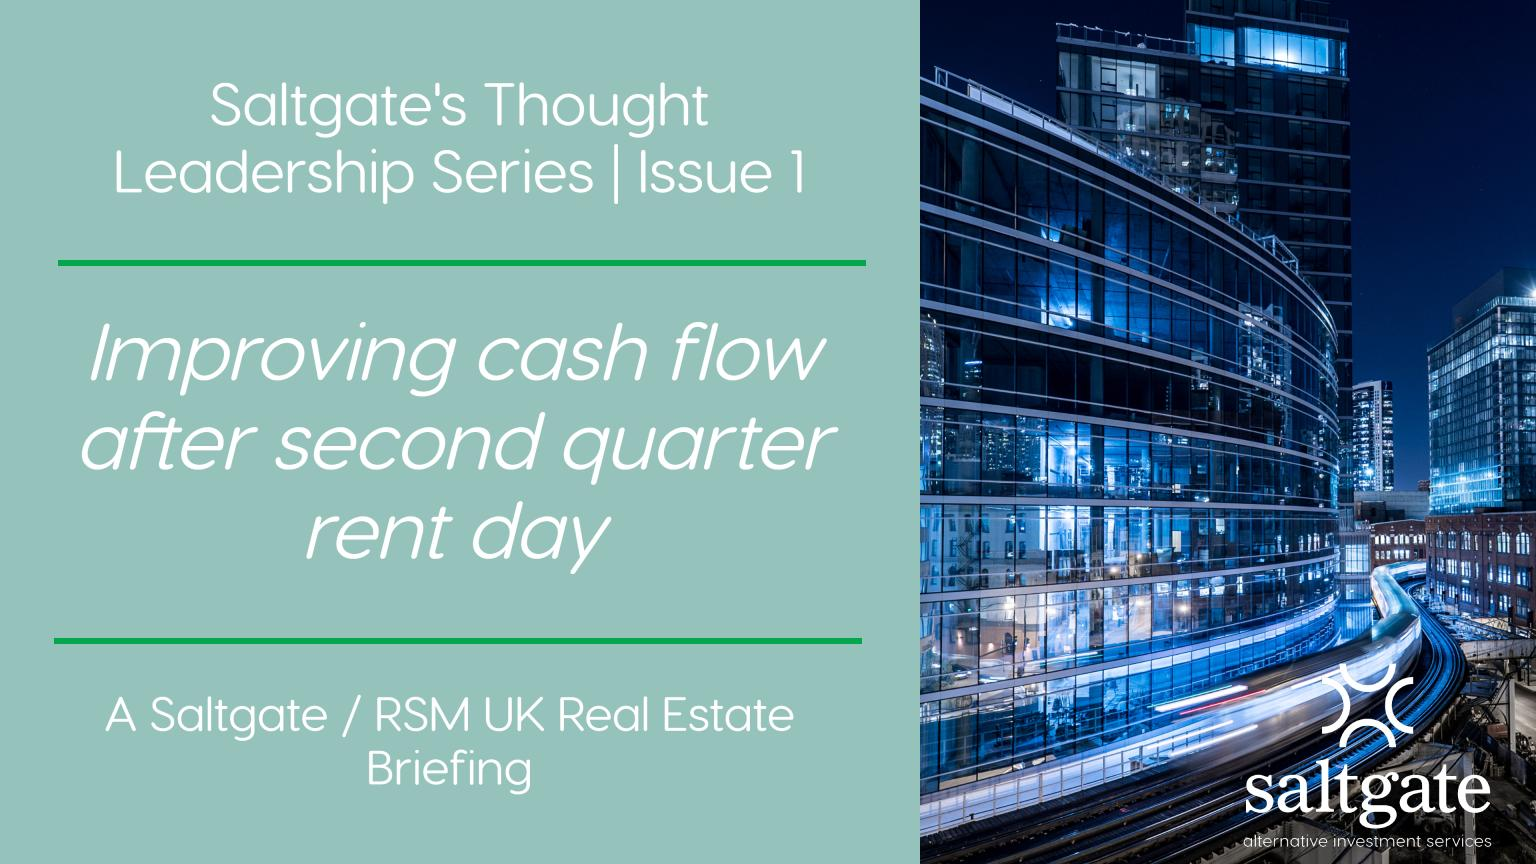 Improving cash flow after second quarter rent day